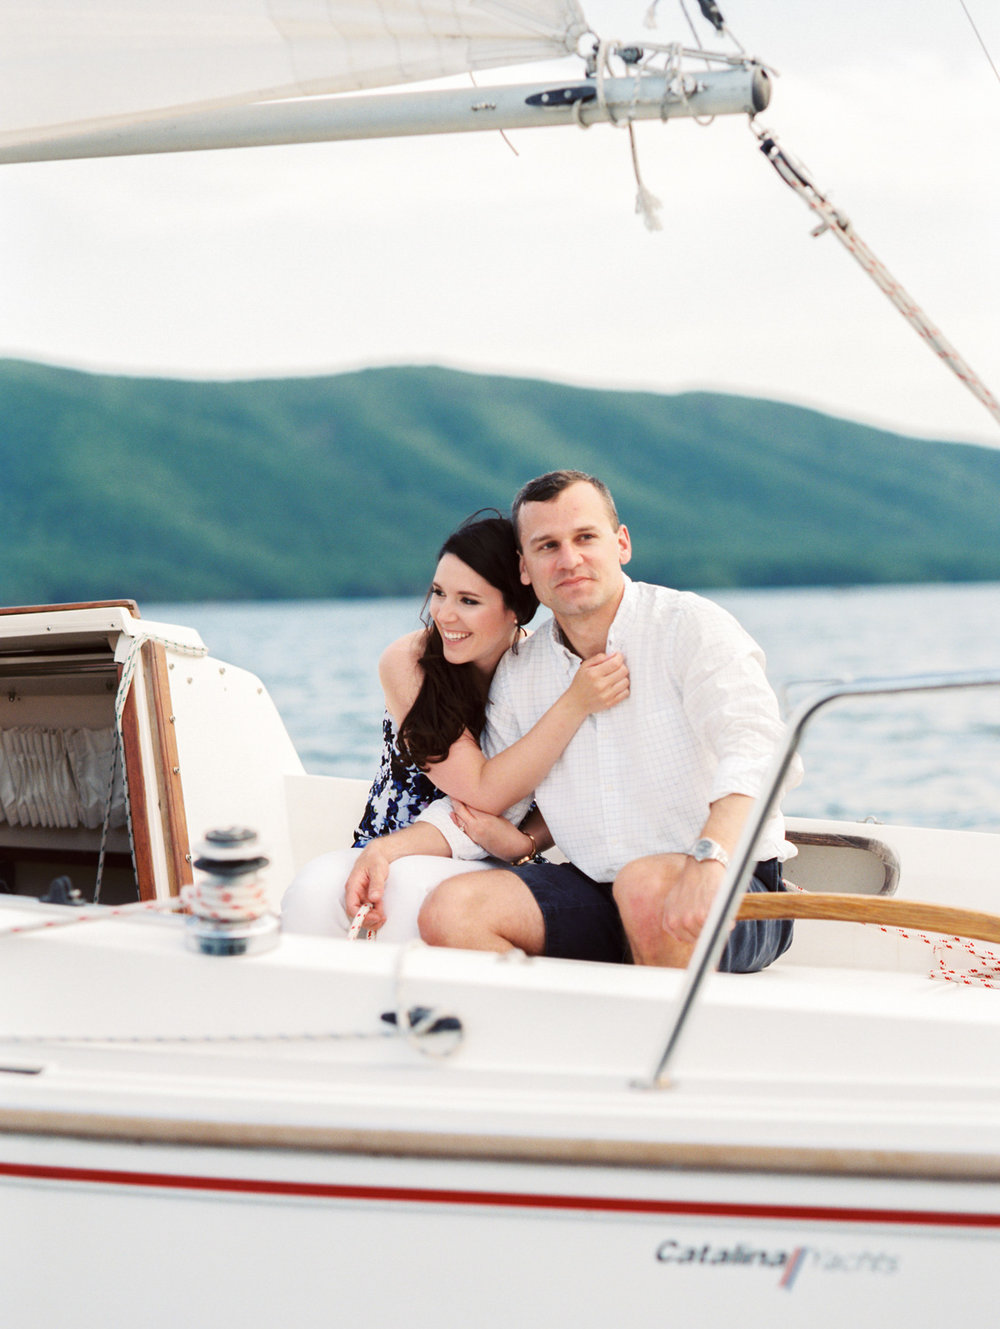 smith-mountain-lake-sailboat-engagement-session-charlotte-sailing-photographer-6.jpg